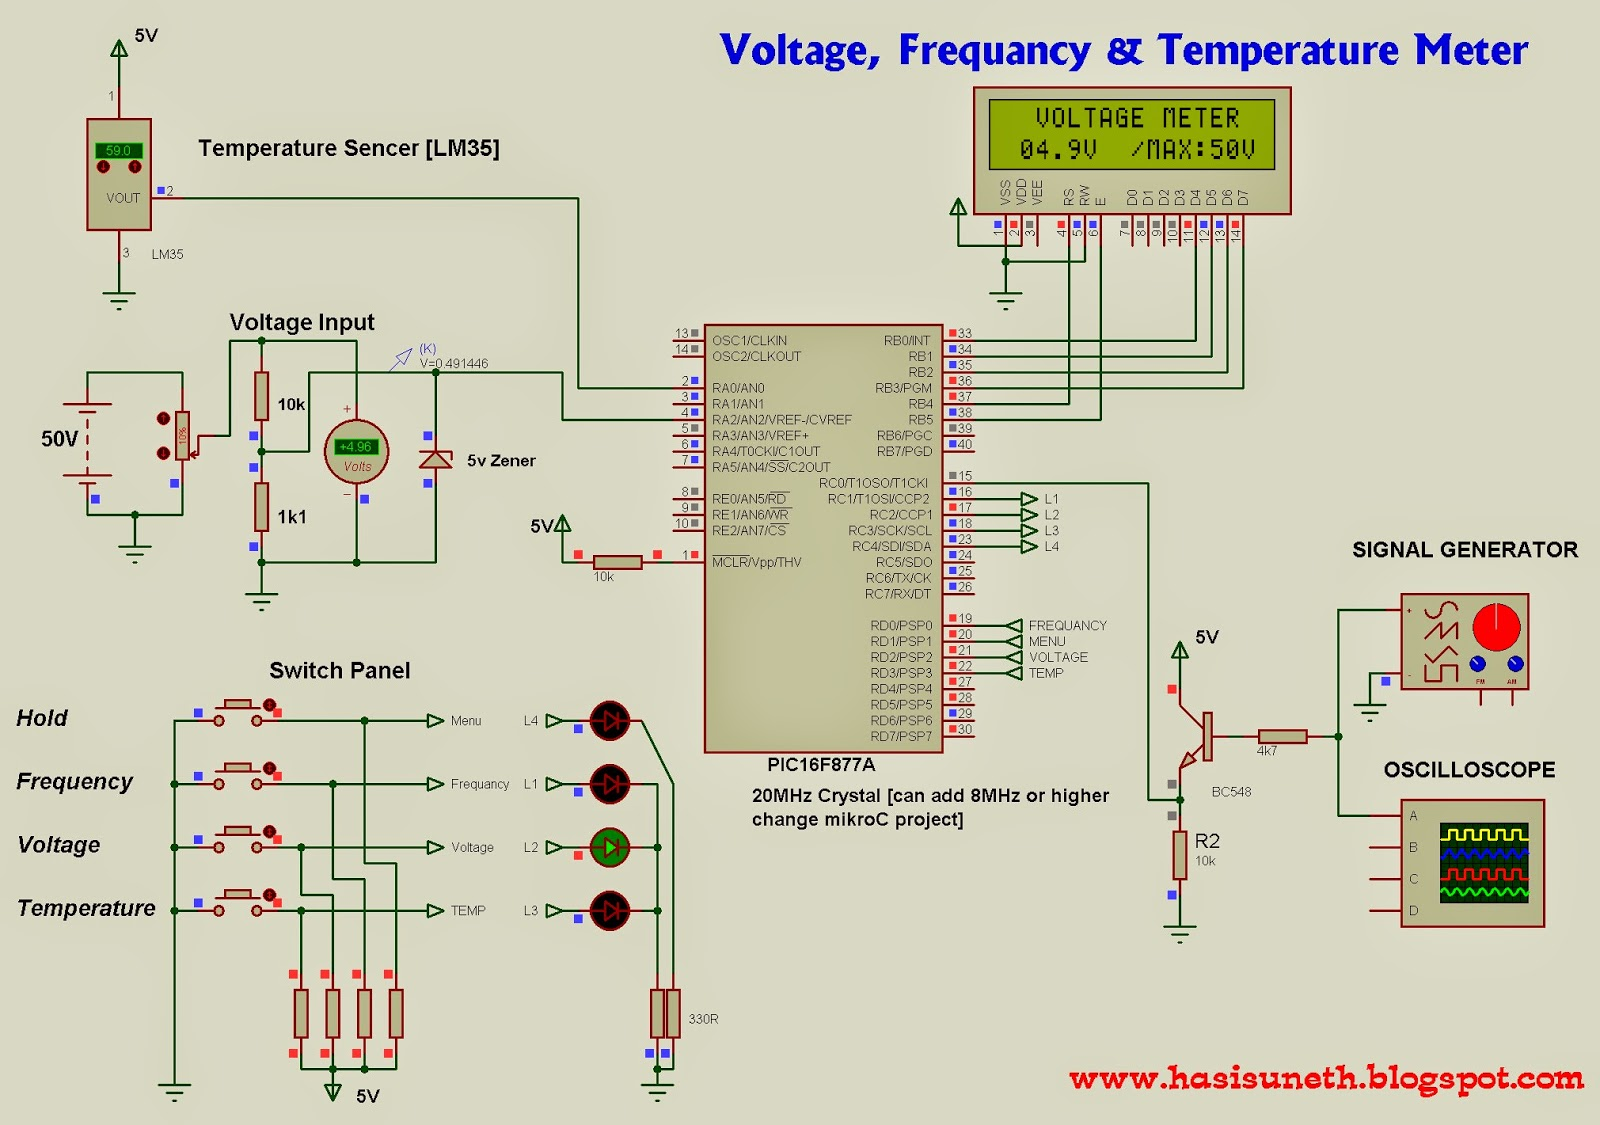 Voltage Frequency Meter : Future dreams voltage temperature frequency meter with